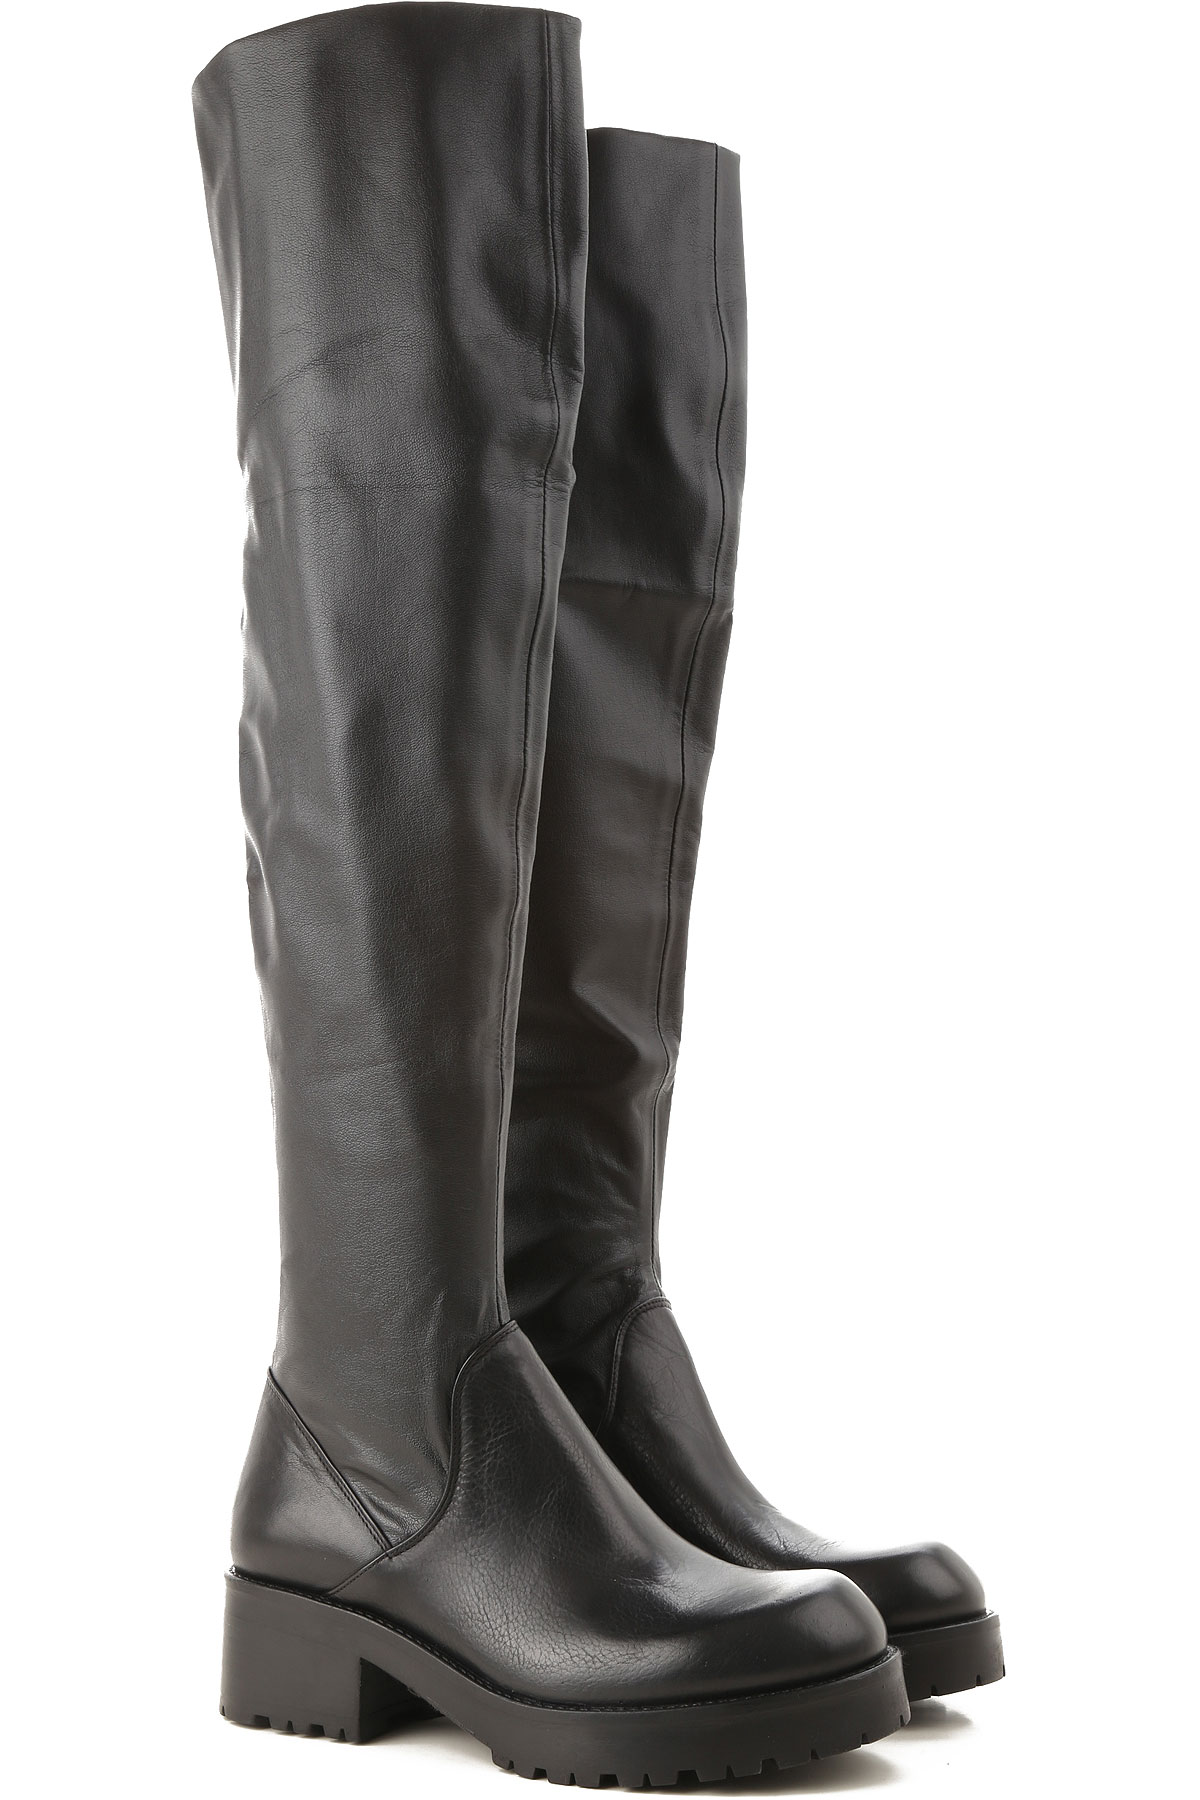 Image of Strategia Boots for Women, Booties, Black, Leather, 2017, 10 5 6 7 8 9